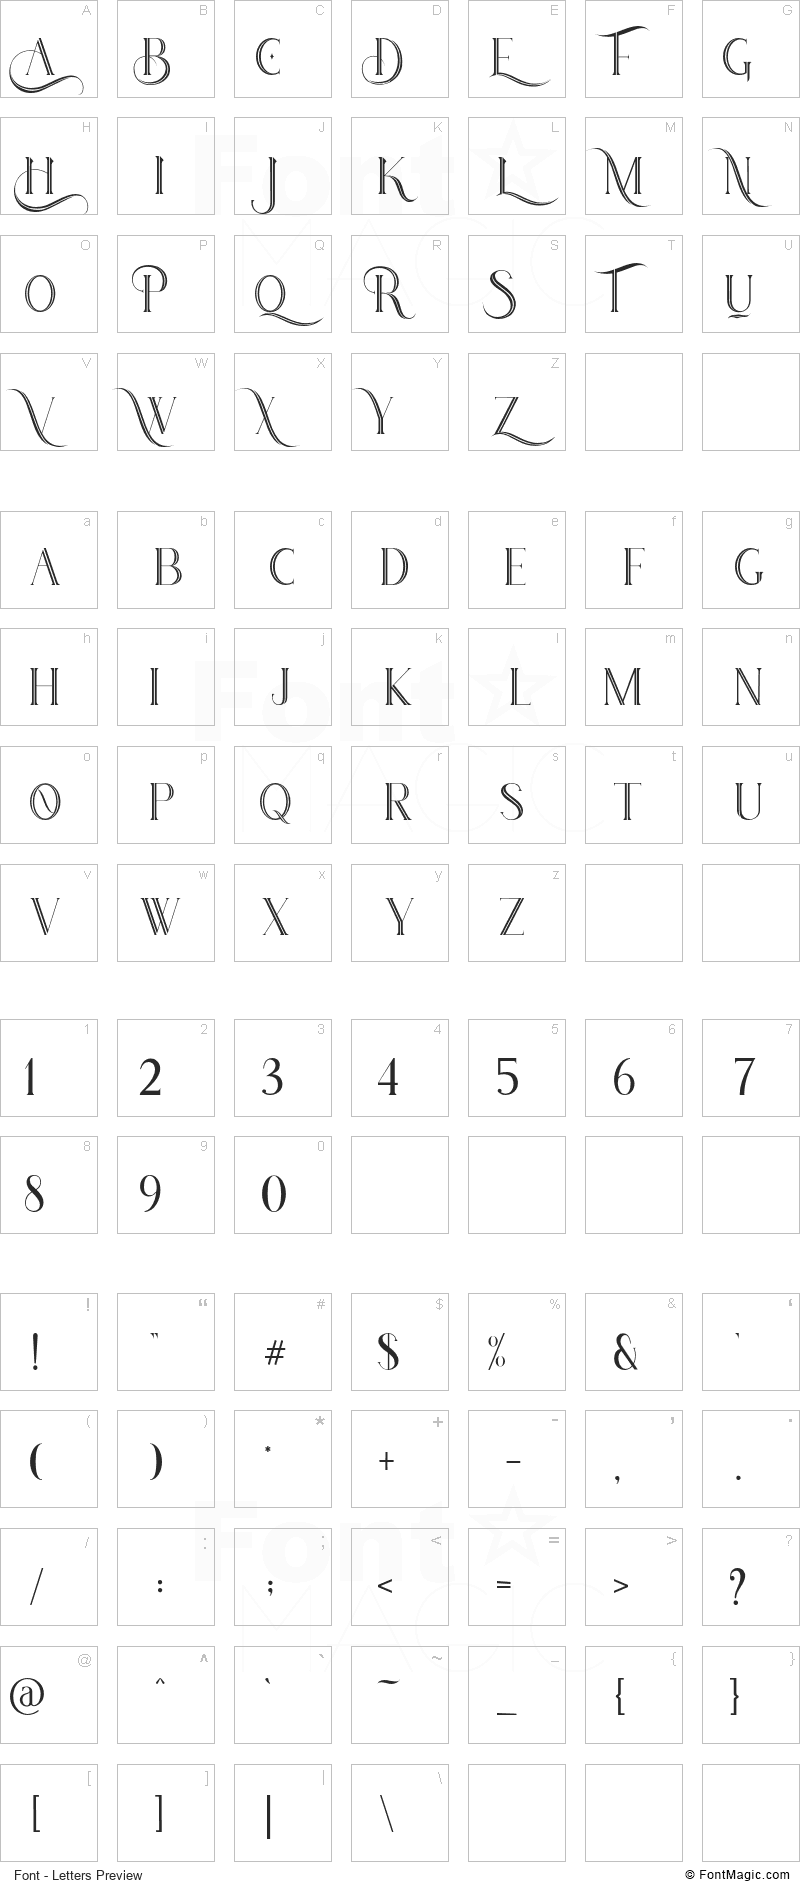 Houston Font - All Latters Preview Chart